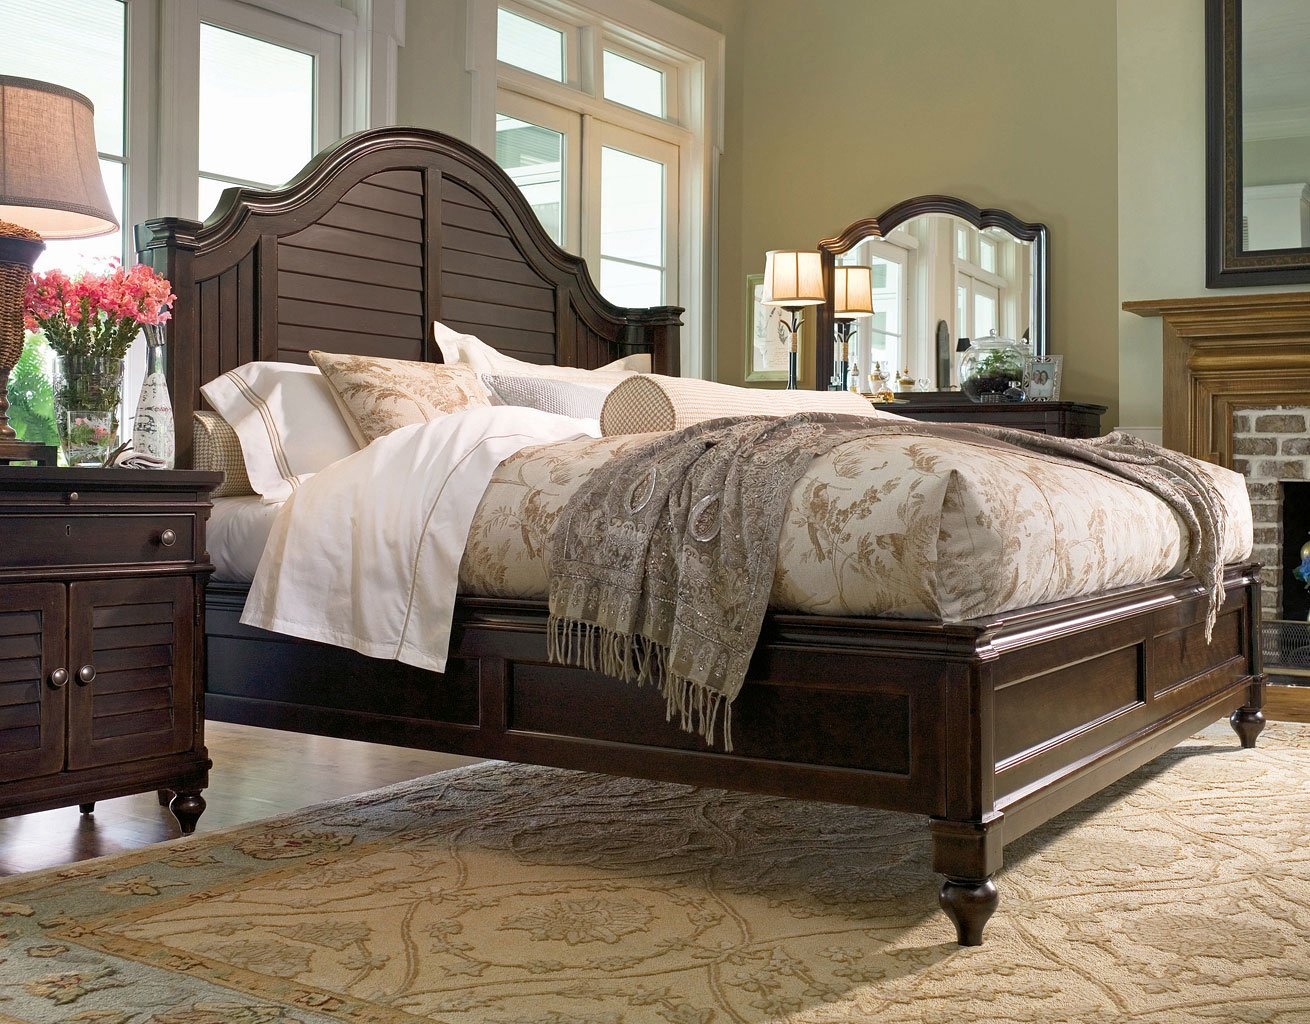 Image of: Paula Deen Home Steel Magnolia Bedroom Set Tobacco Paula Deen Home Furniture Cart